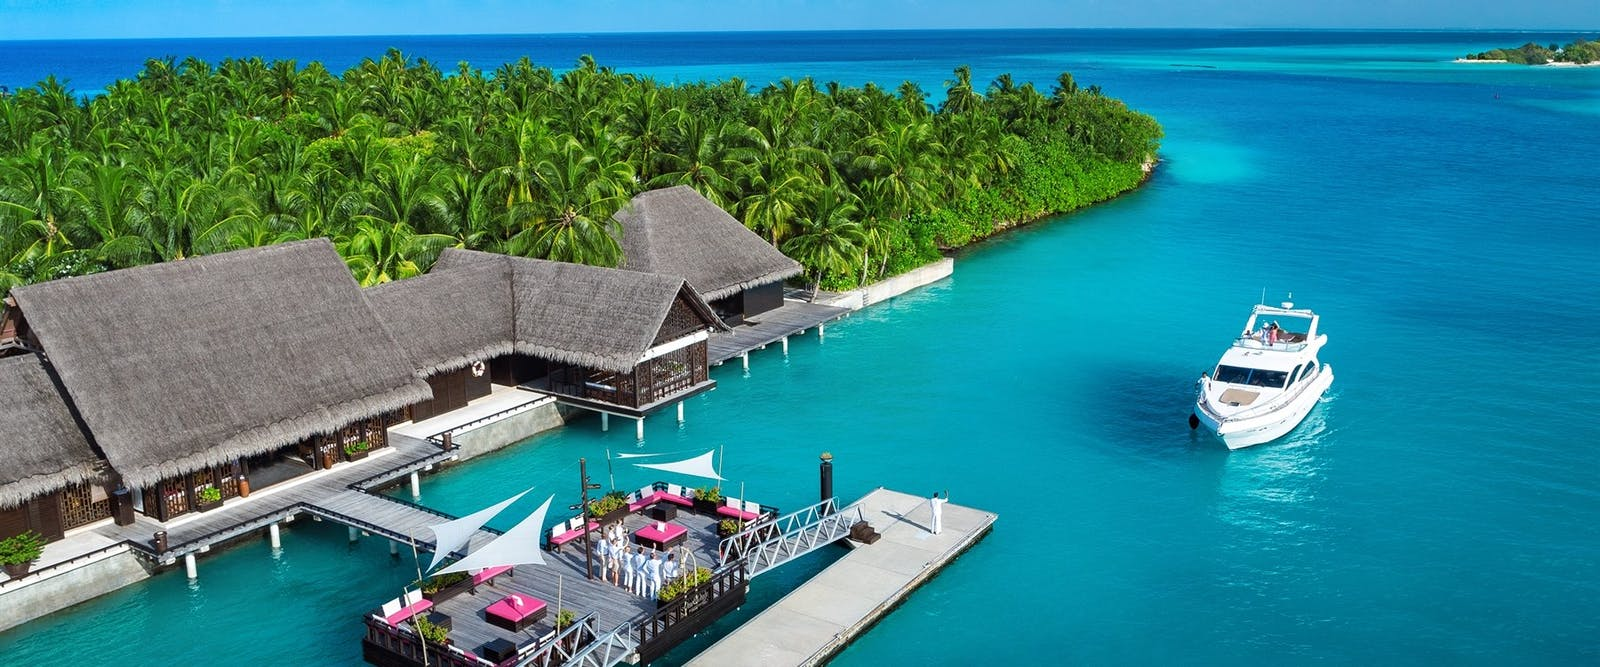 Arrival jetty at One&Only Reethi Rah, Maldives, Indian Ocean